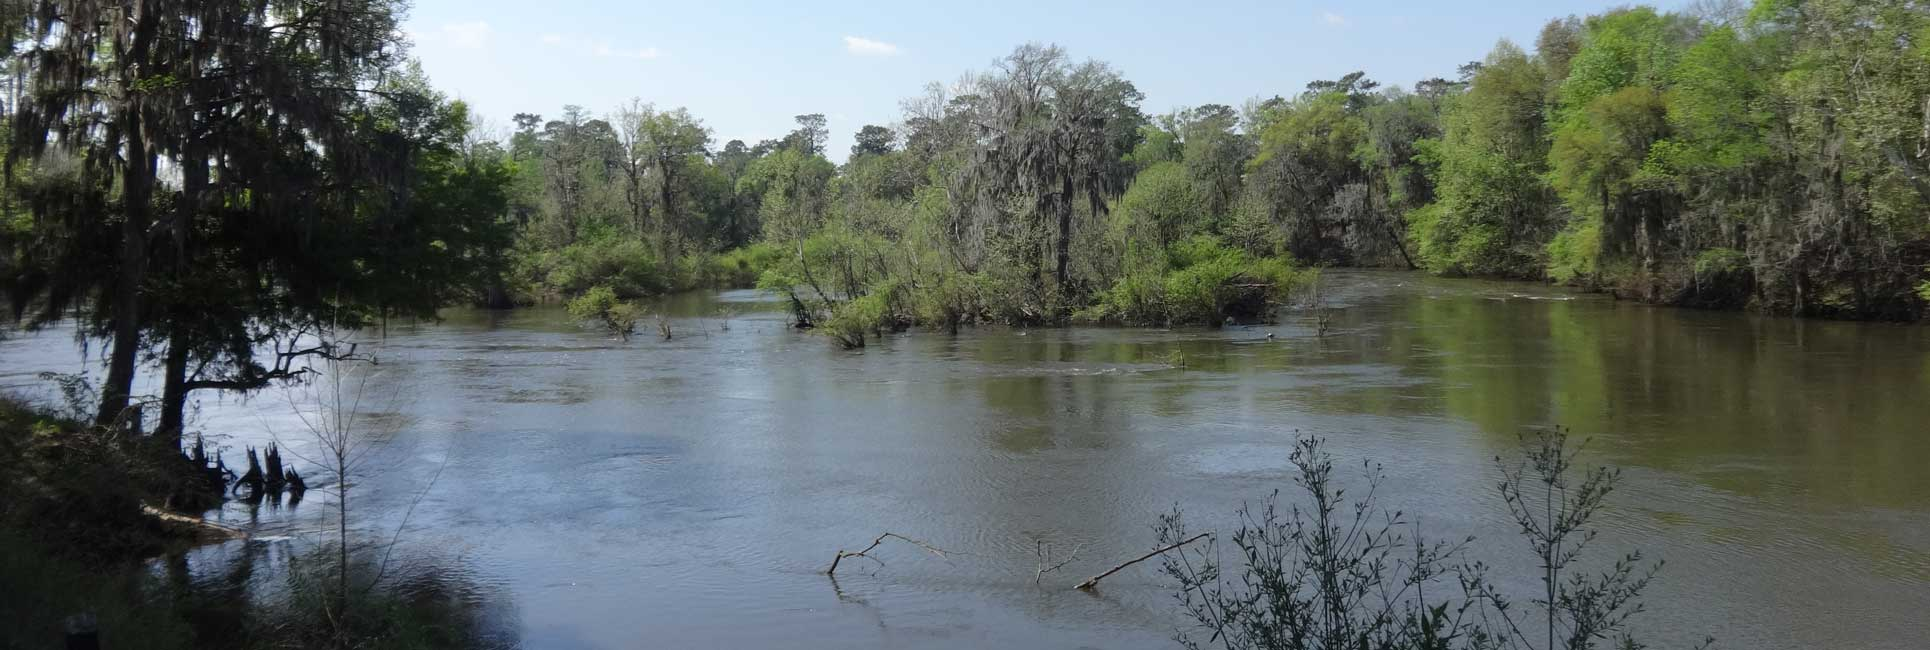 A view of water flowing through the trees on Flint River in Albany, GA.